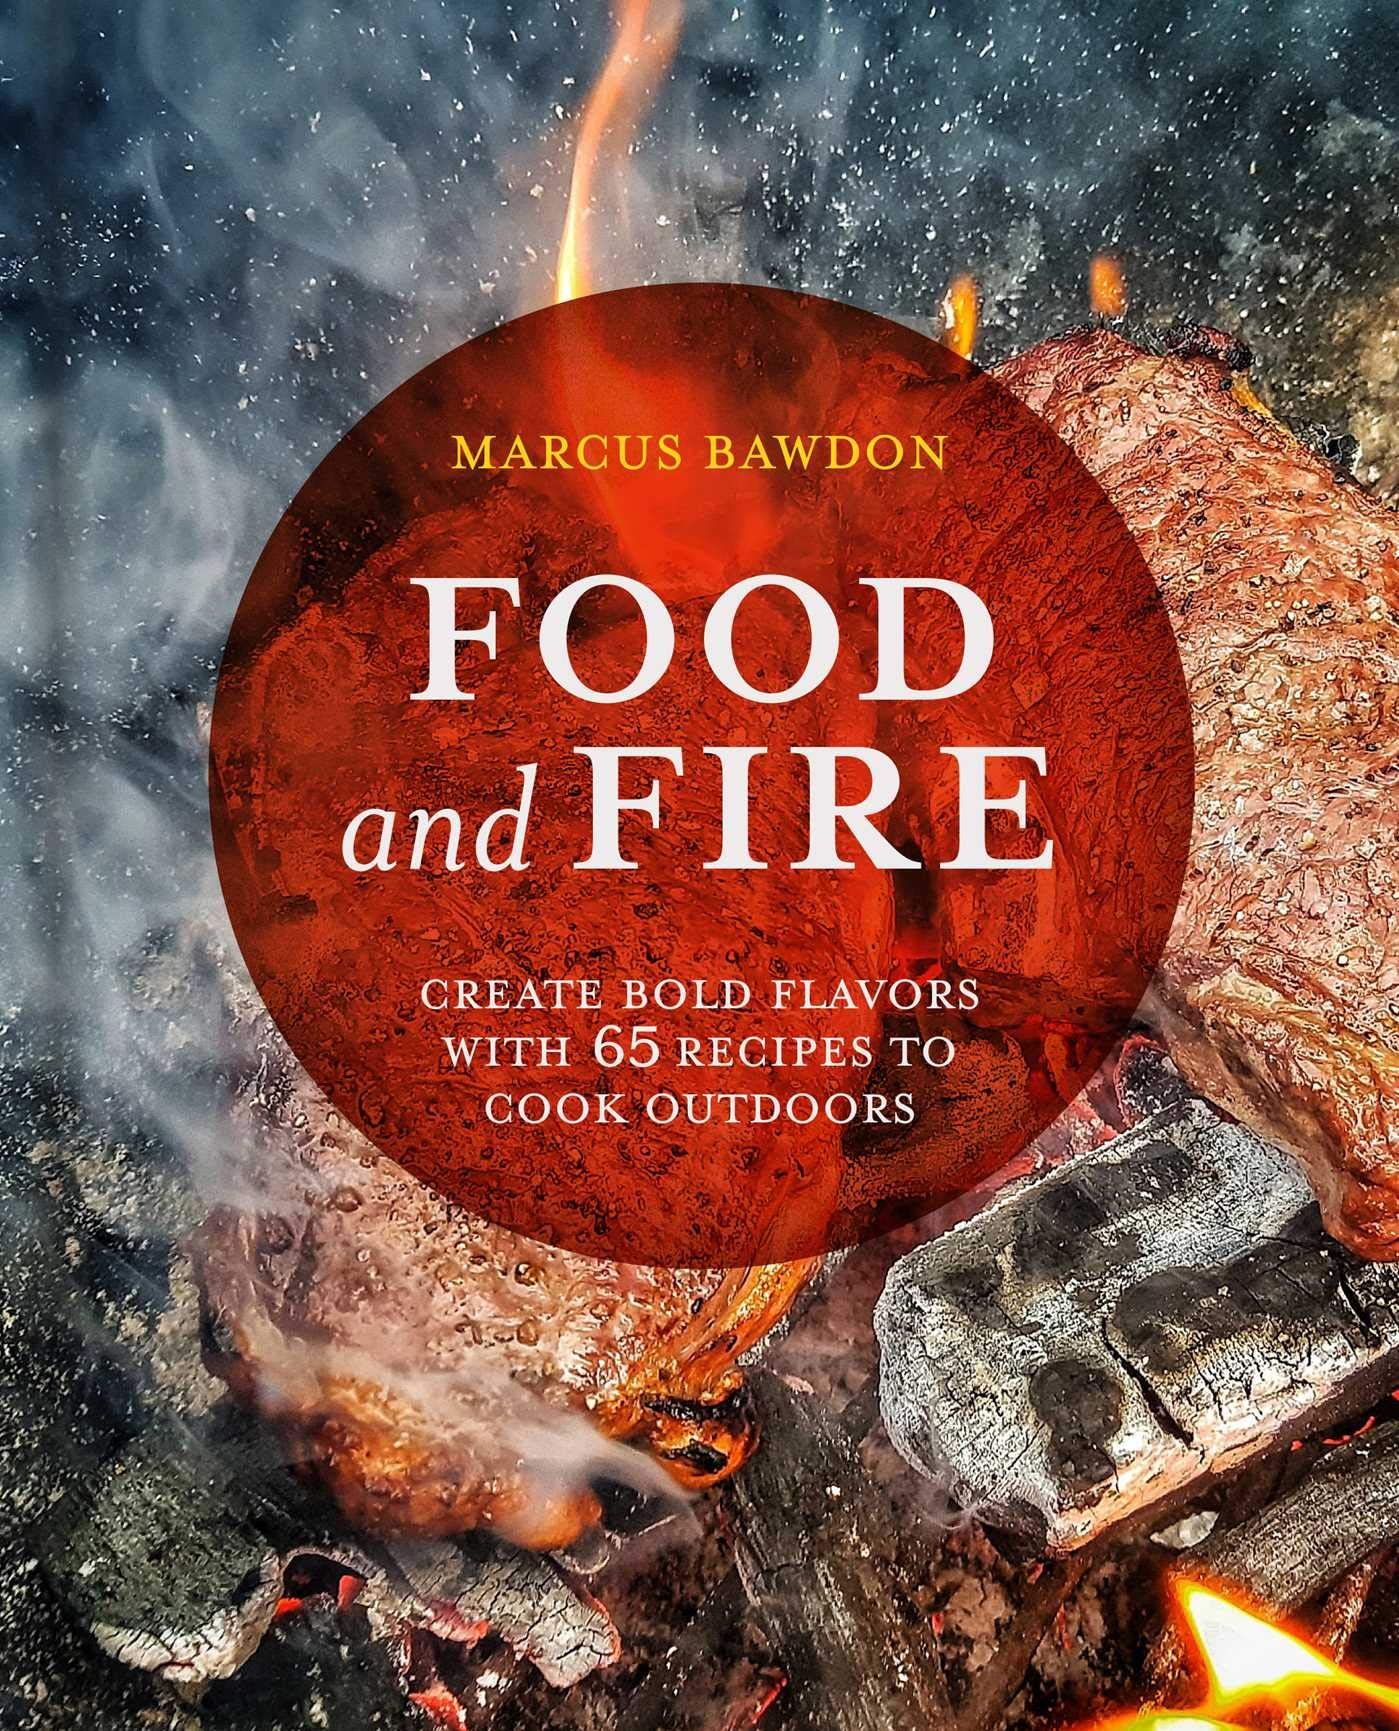 Food and Fire – The Fireside Cooking Companion